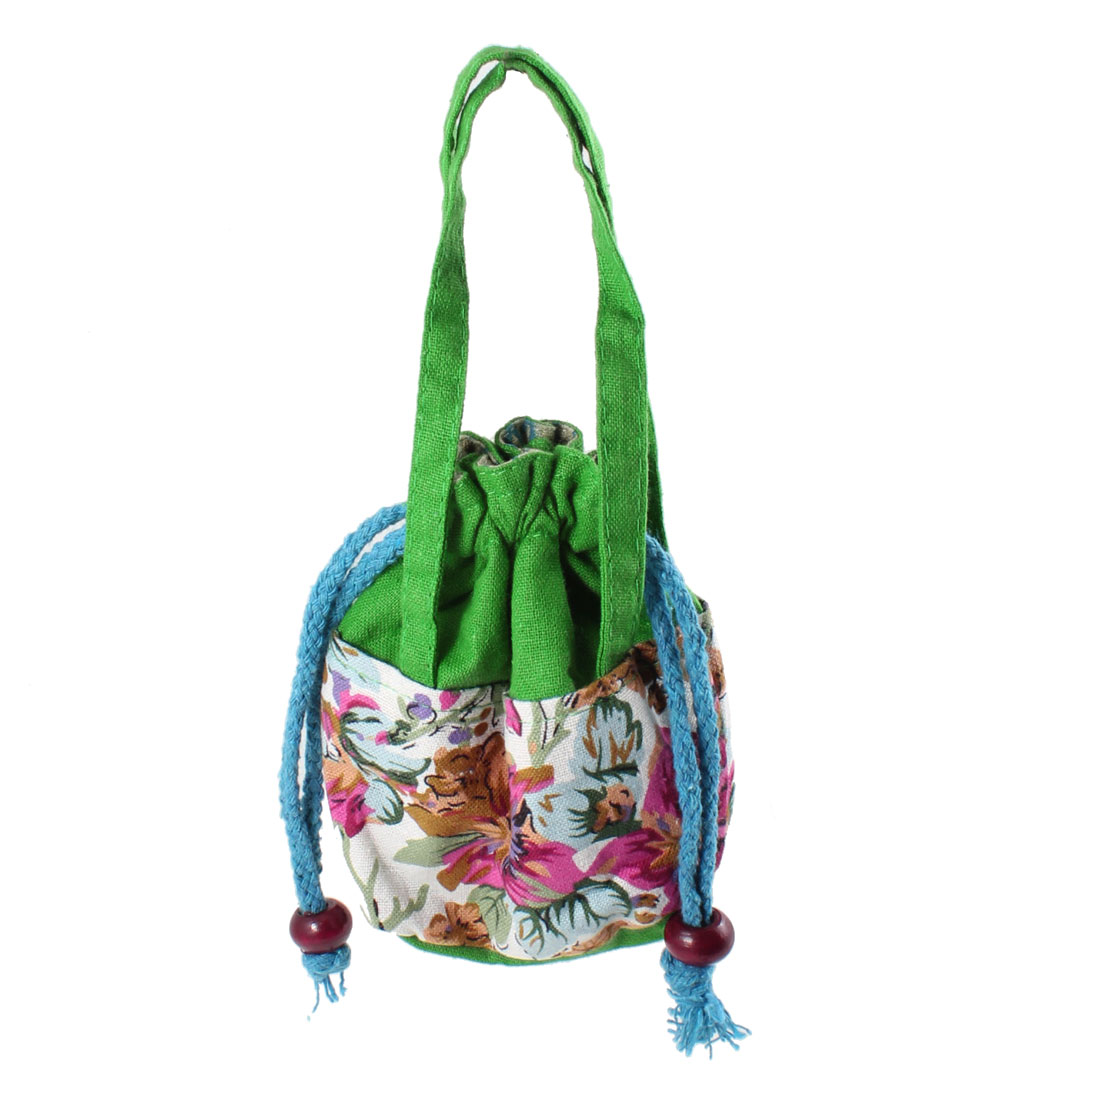 Lady Drawstring Nylon Blue Strap Floral Print Handbag Tote Bag Green